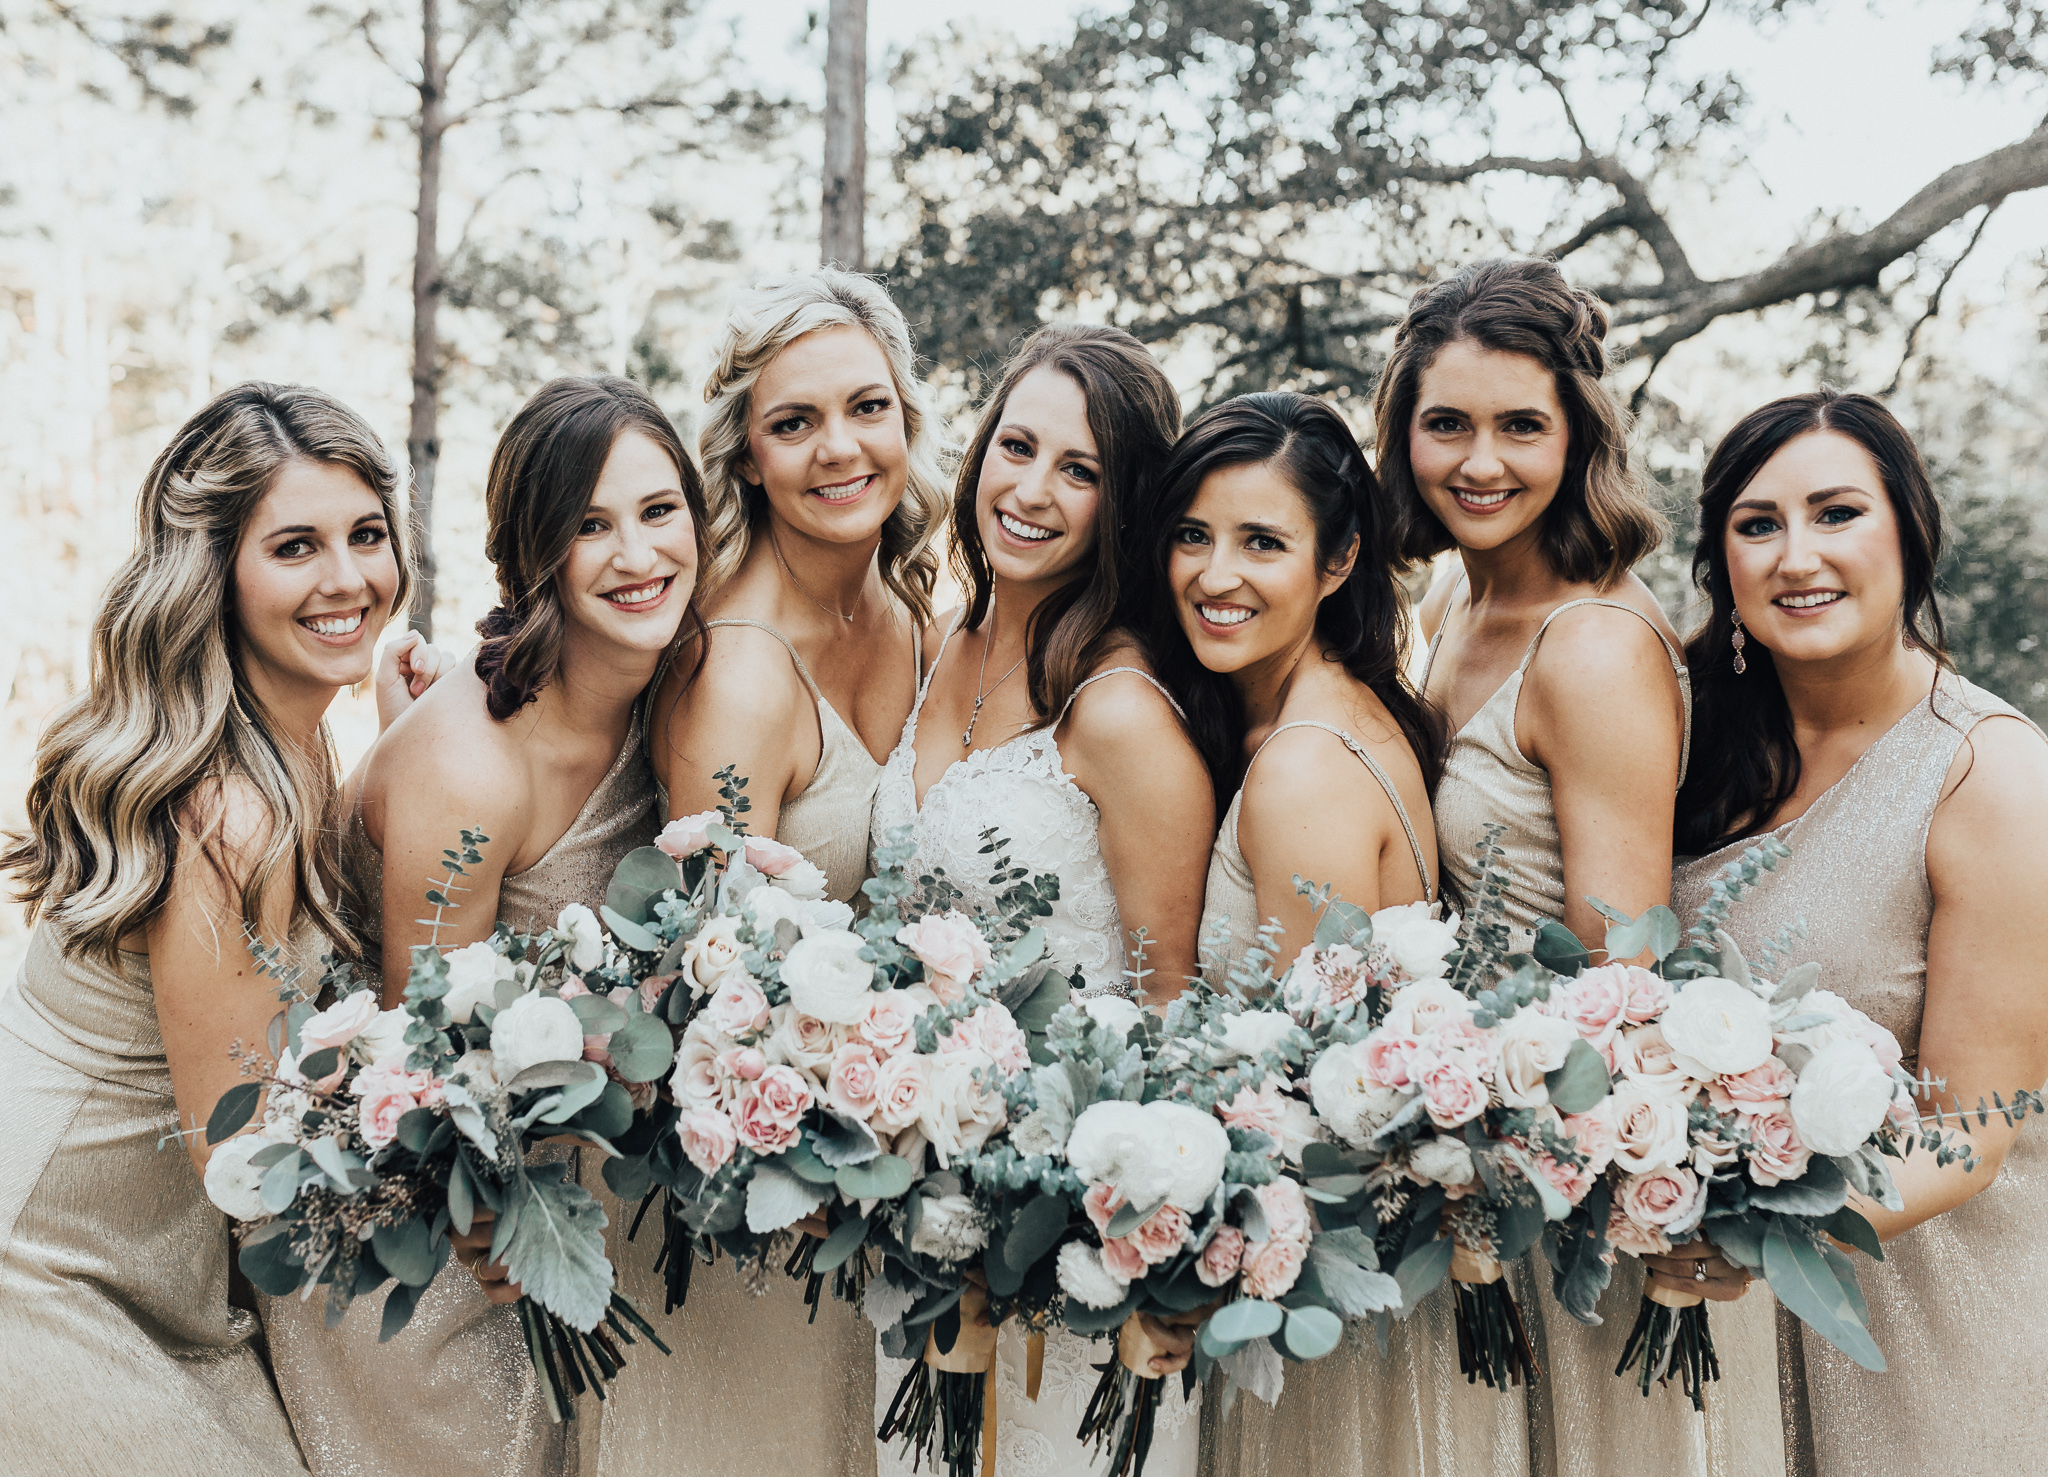 fire of pensacola wedding bouquets and gold lulus bridesmaid dresses at live oak plantation